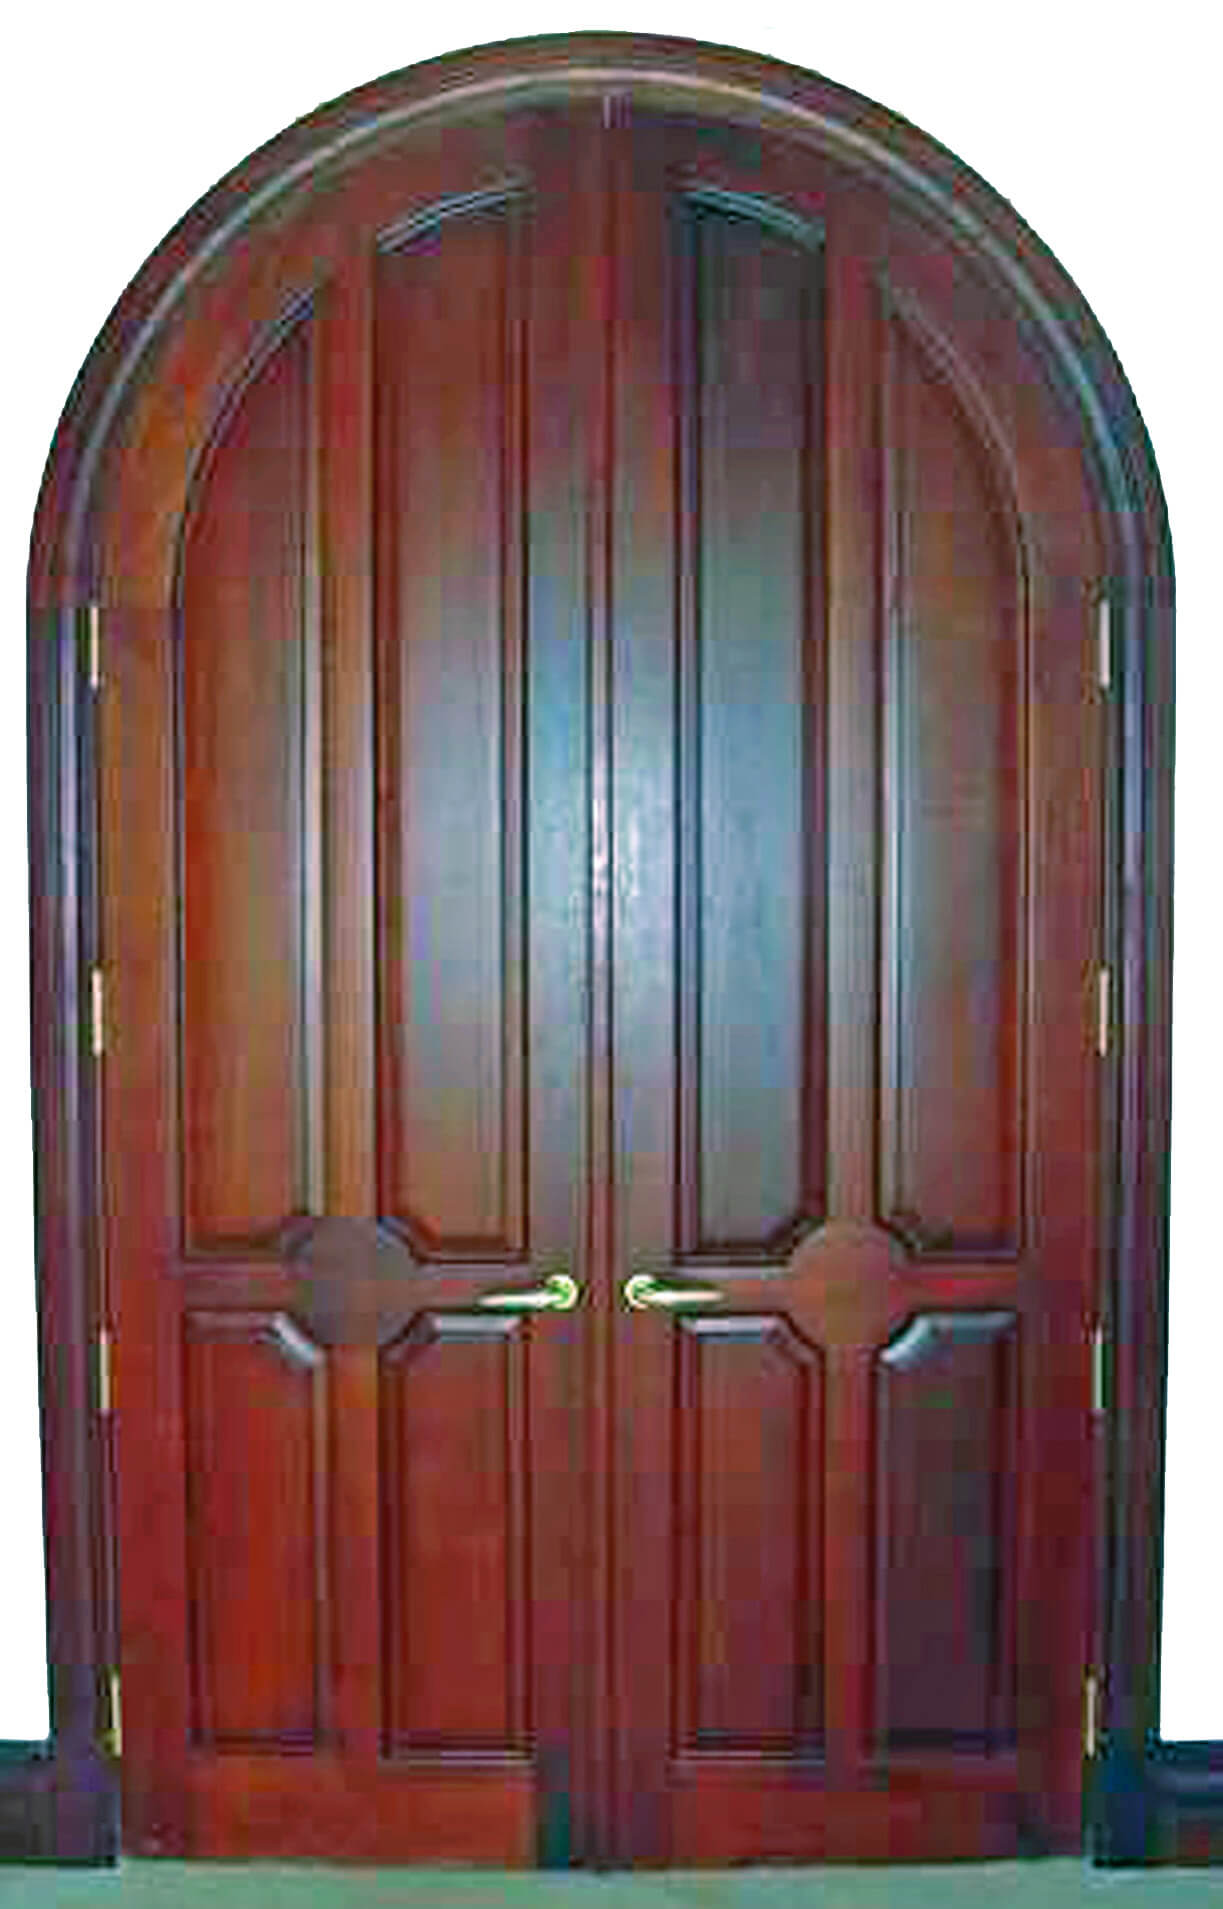 BAL HARBOUR MAHOGANY ARCH DOOR.